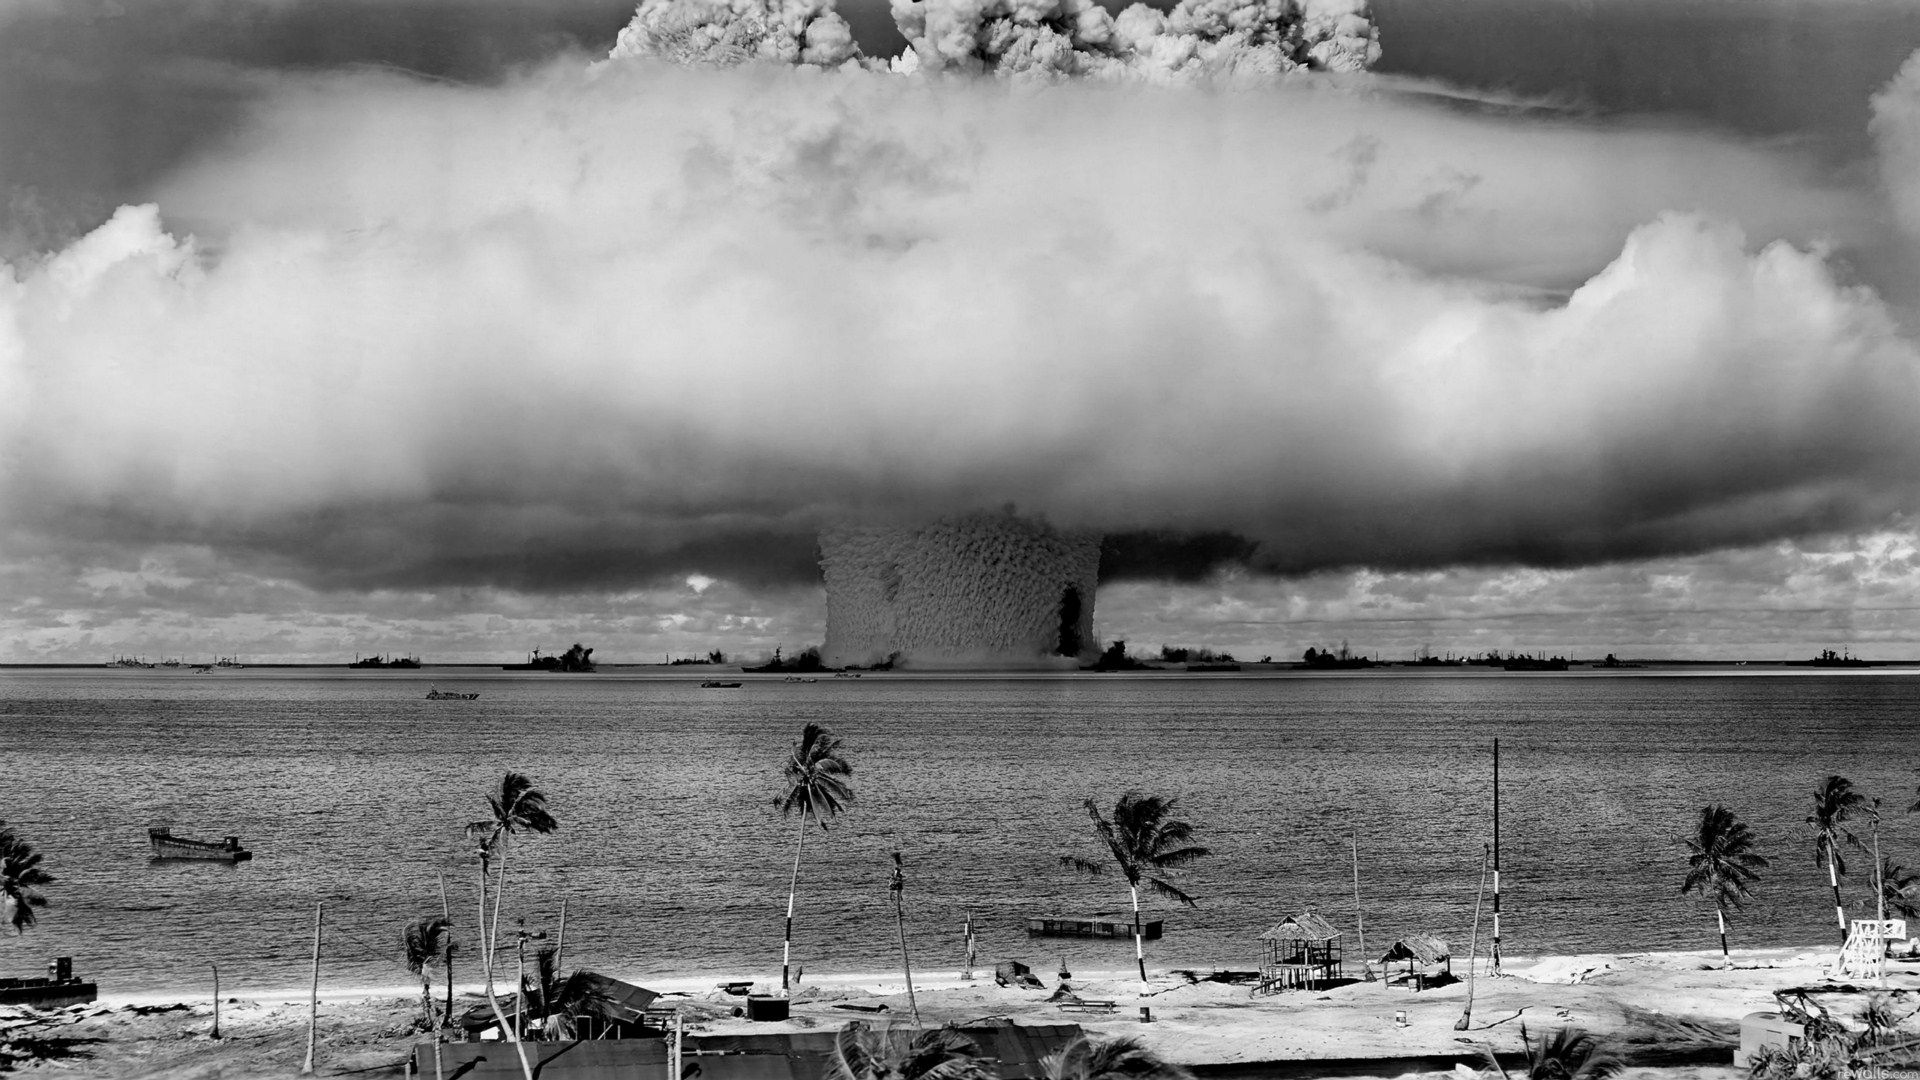 Atom Bomb Explosion 1080p HD Desktop Wallpaper | The Man ...